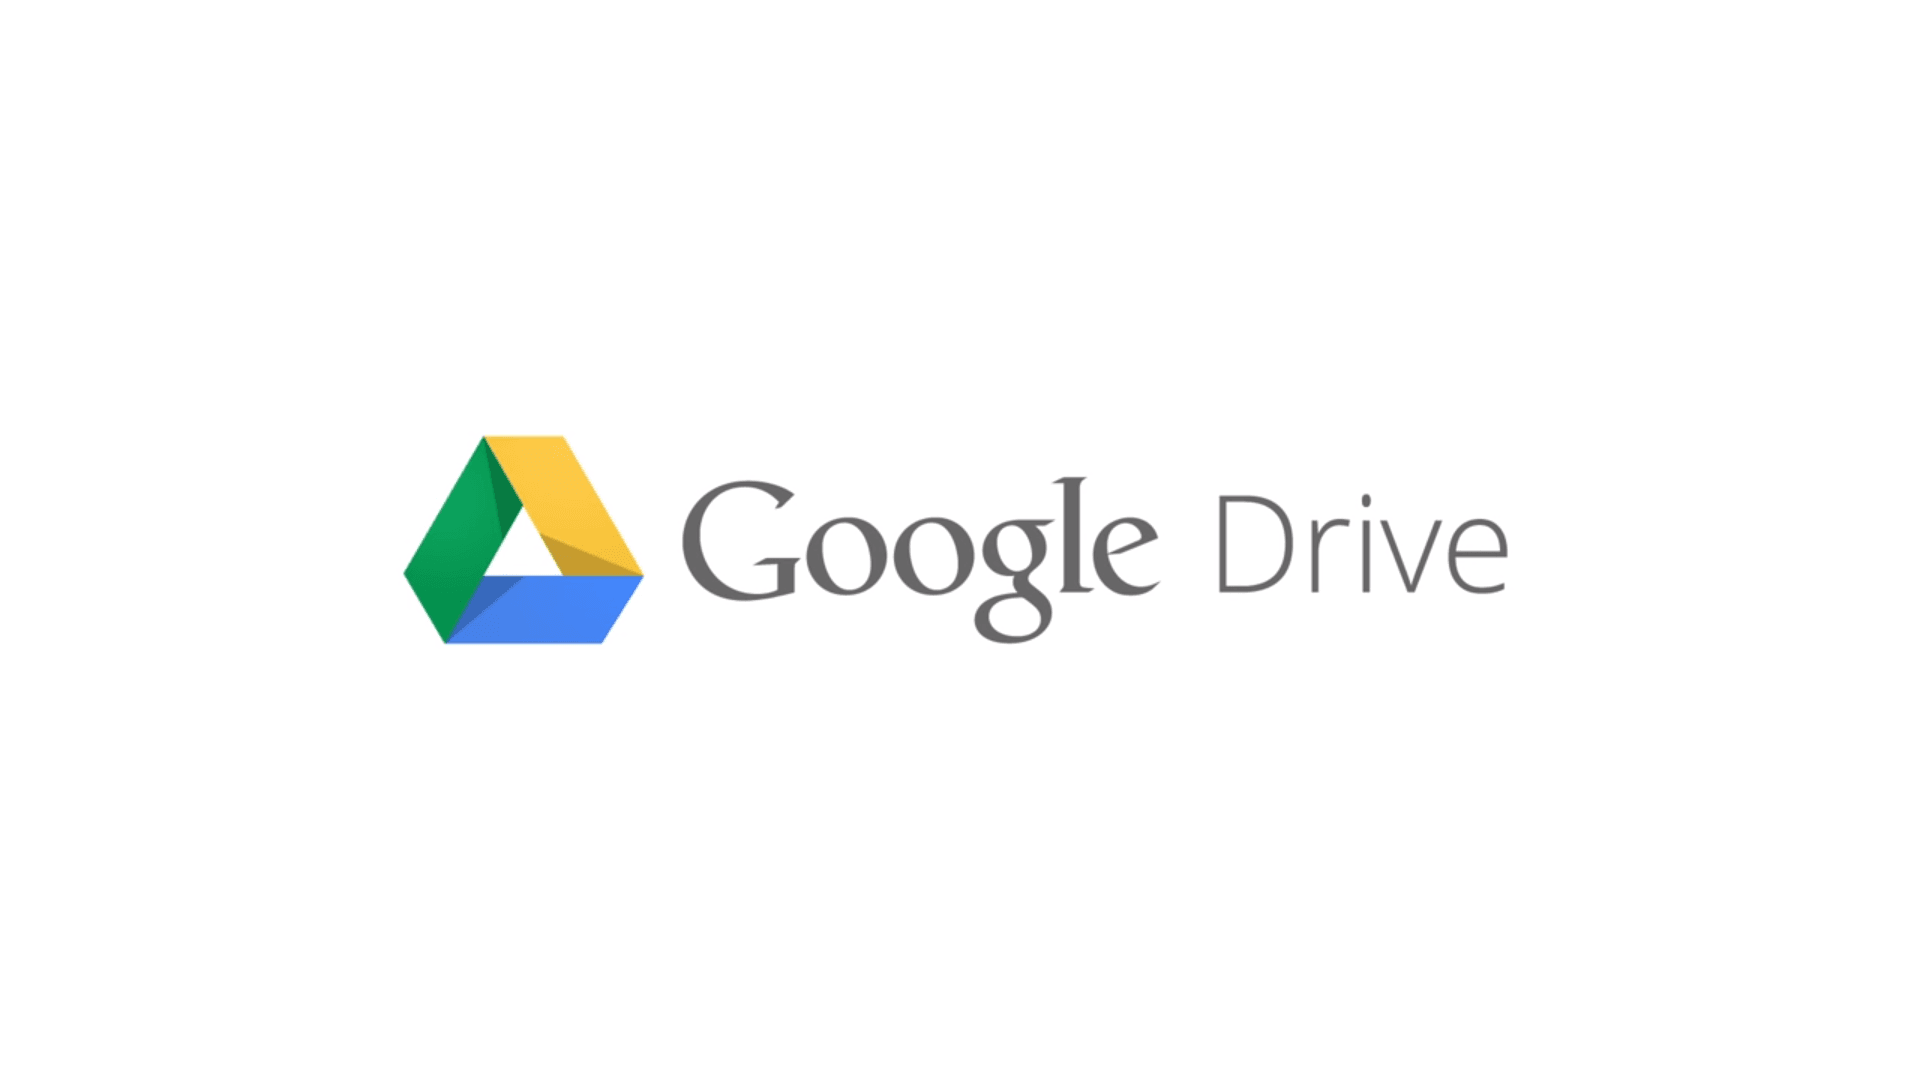 Google Drive vs OneDrive: Which is better?